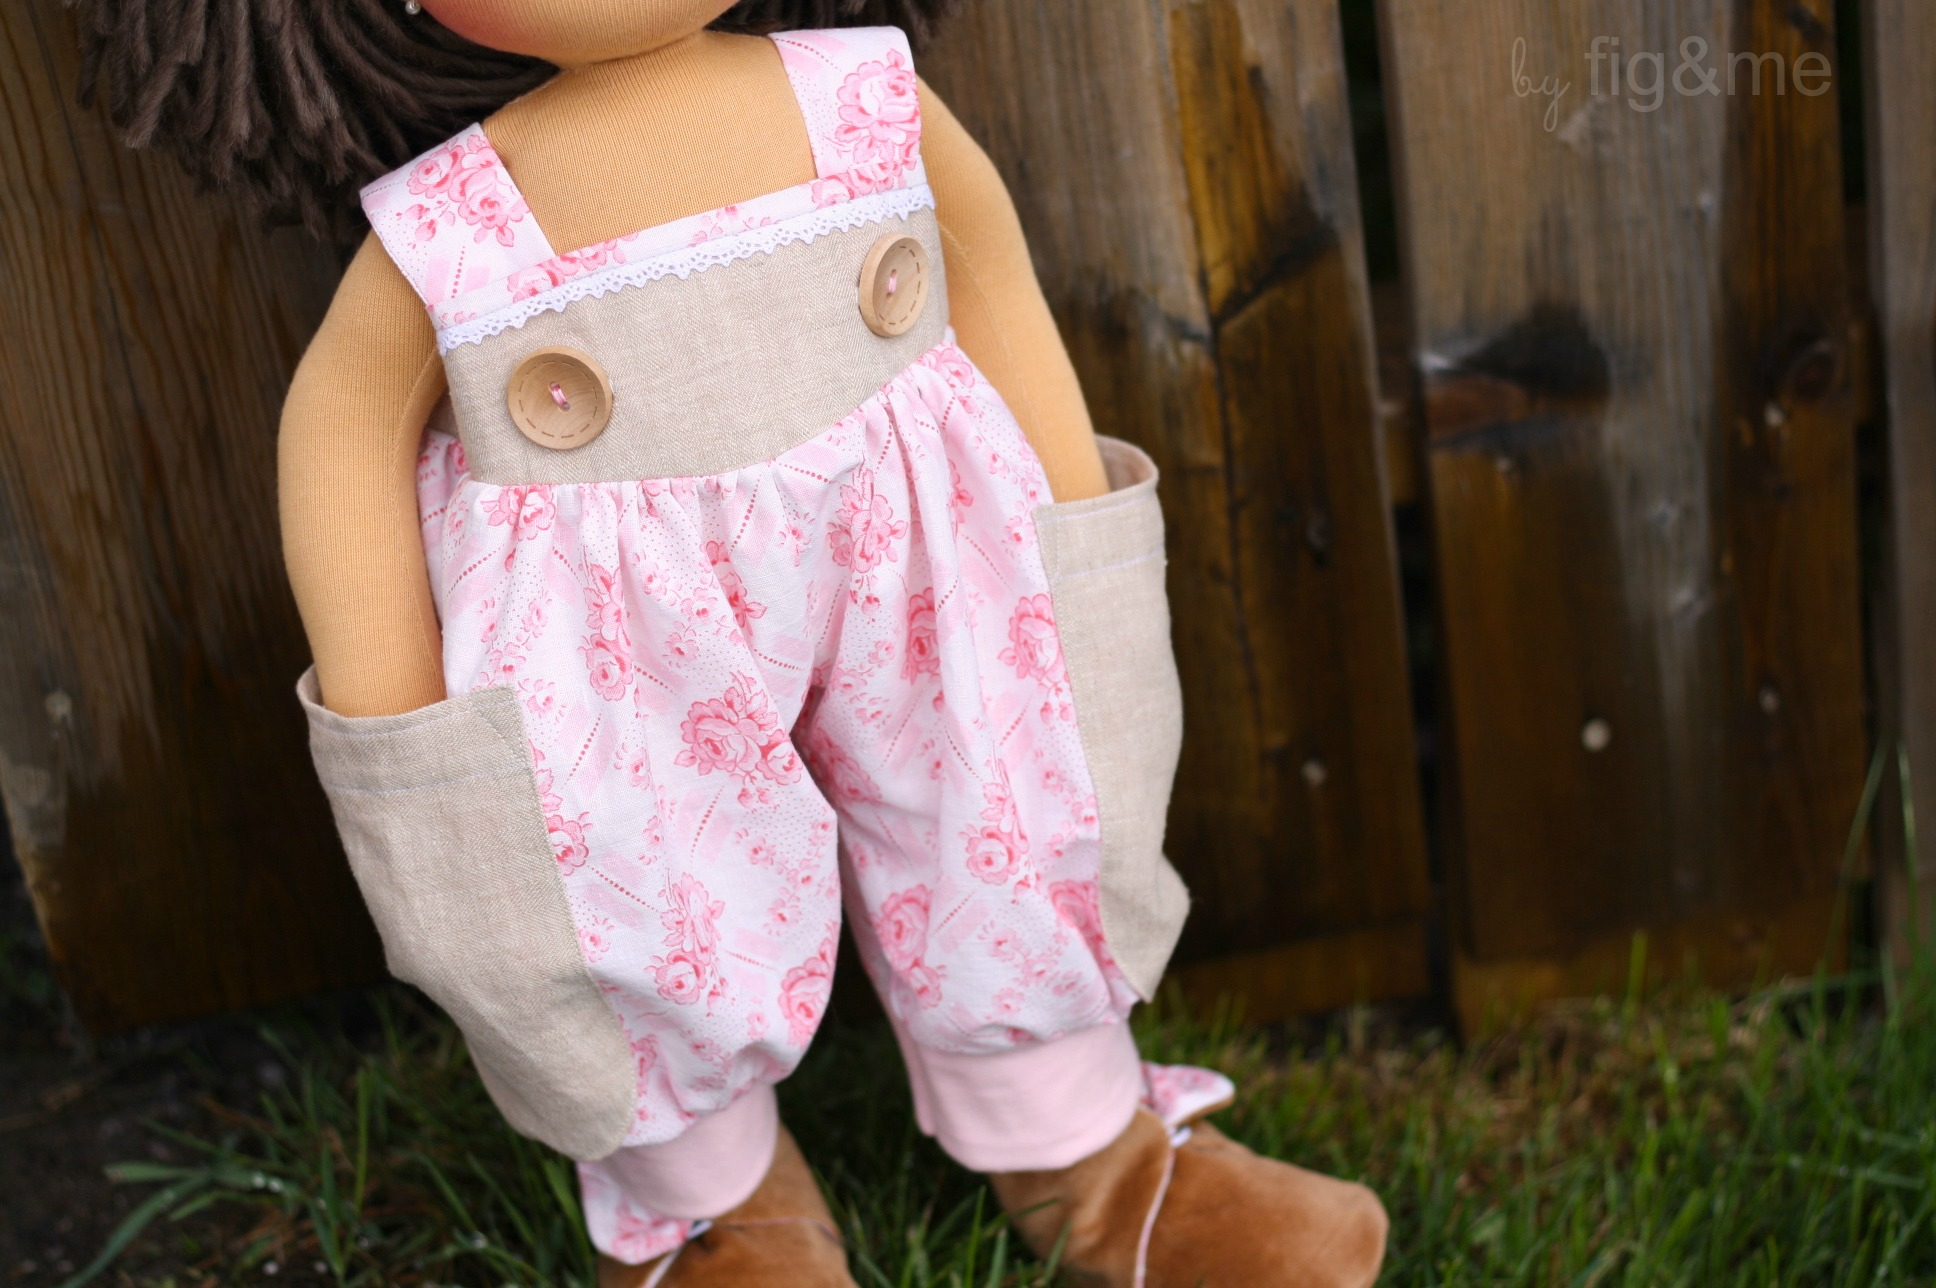 little doll in french overalls, by fig and me.